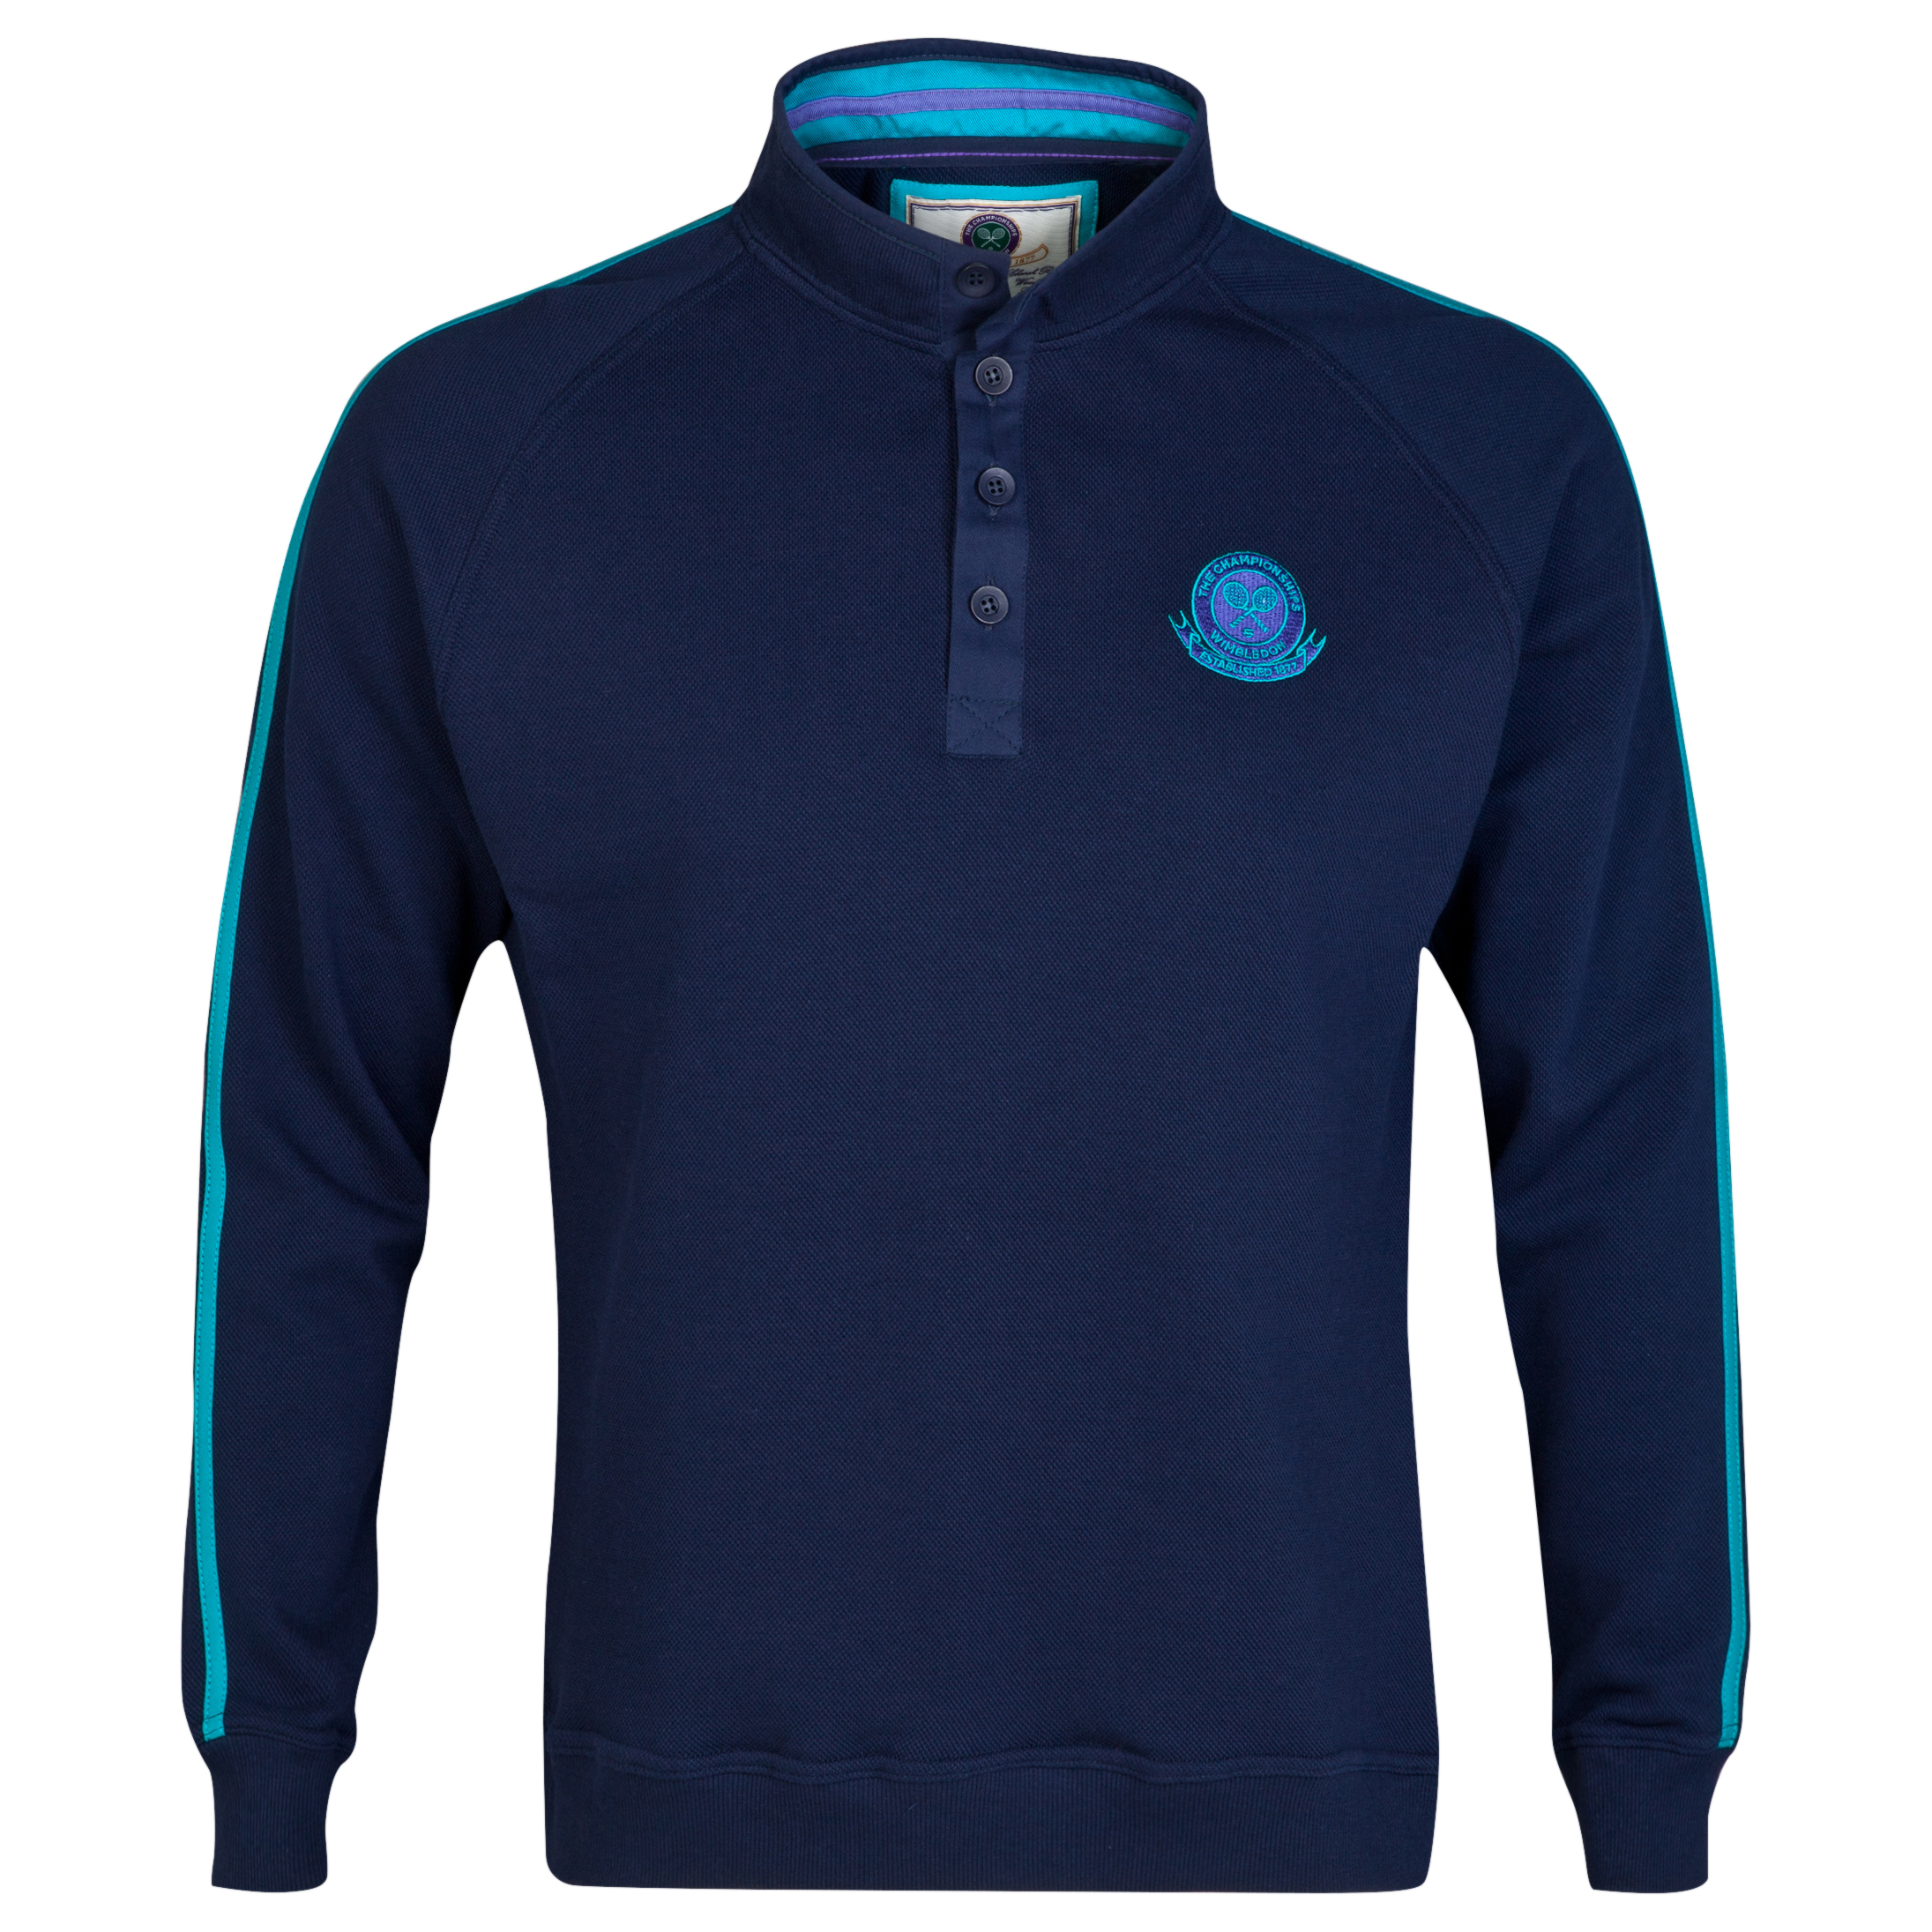 Wimbledon Long Sleeve Button Collar Sweatshirt Navy